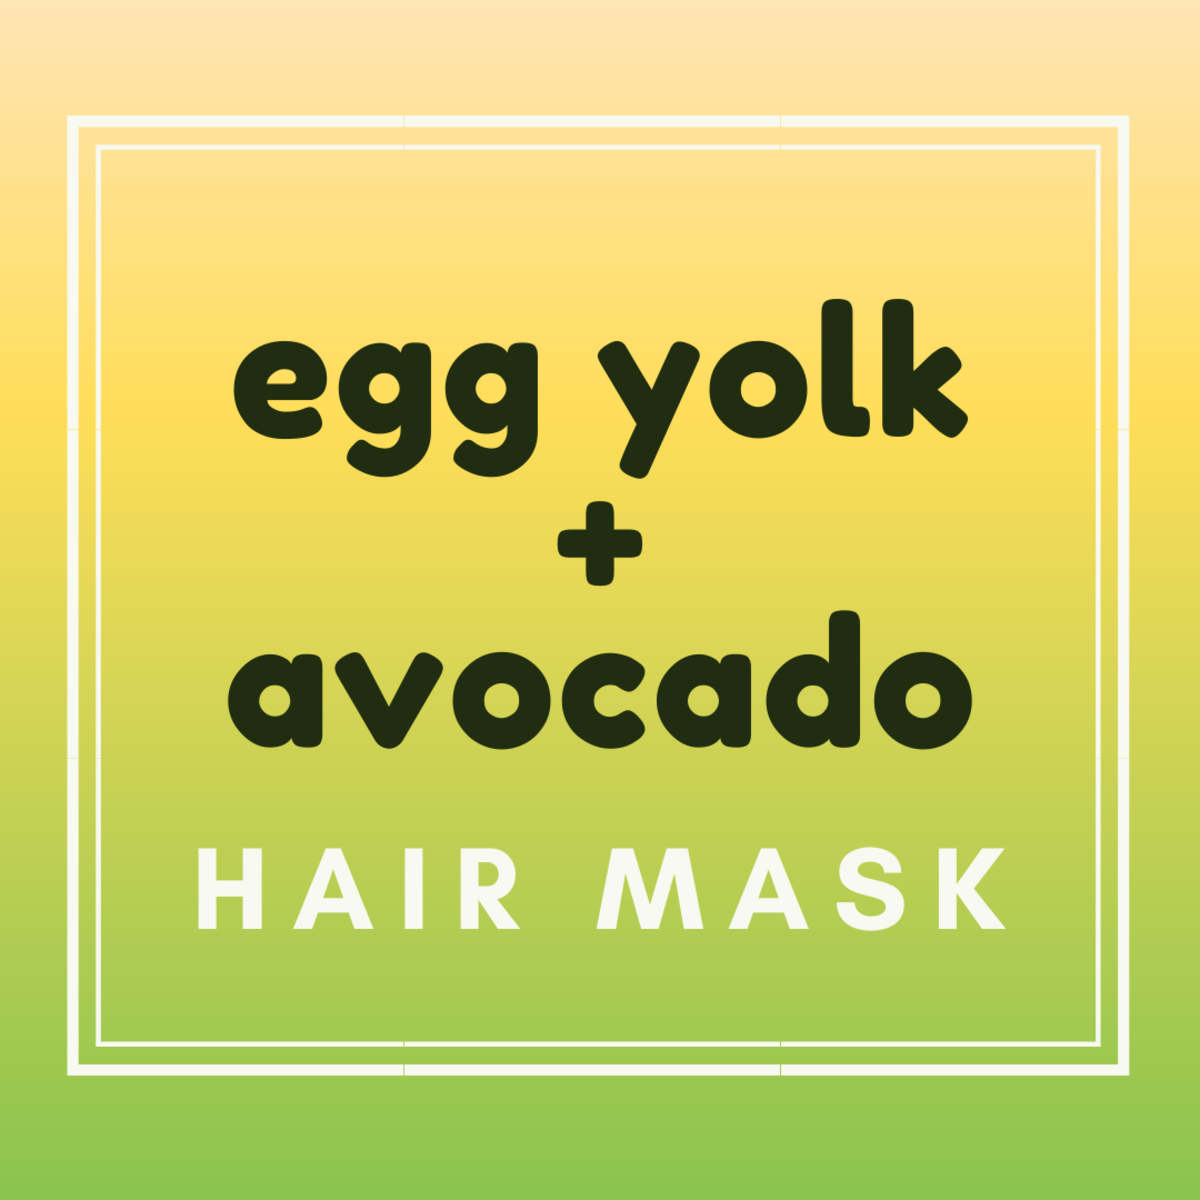 Make a nourishing protein repair hair mask with avocado and egg yolk. Your hair will feel soft and voluminous for days!